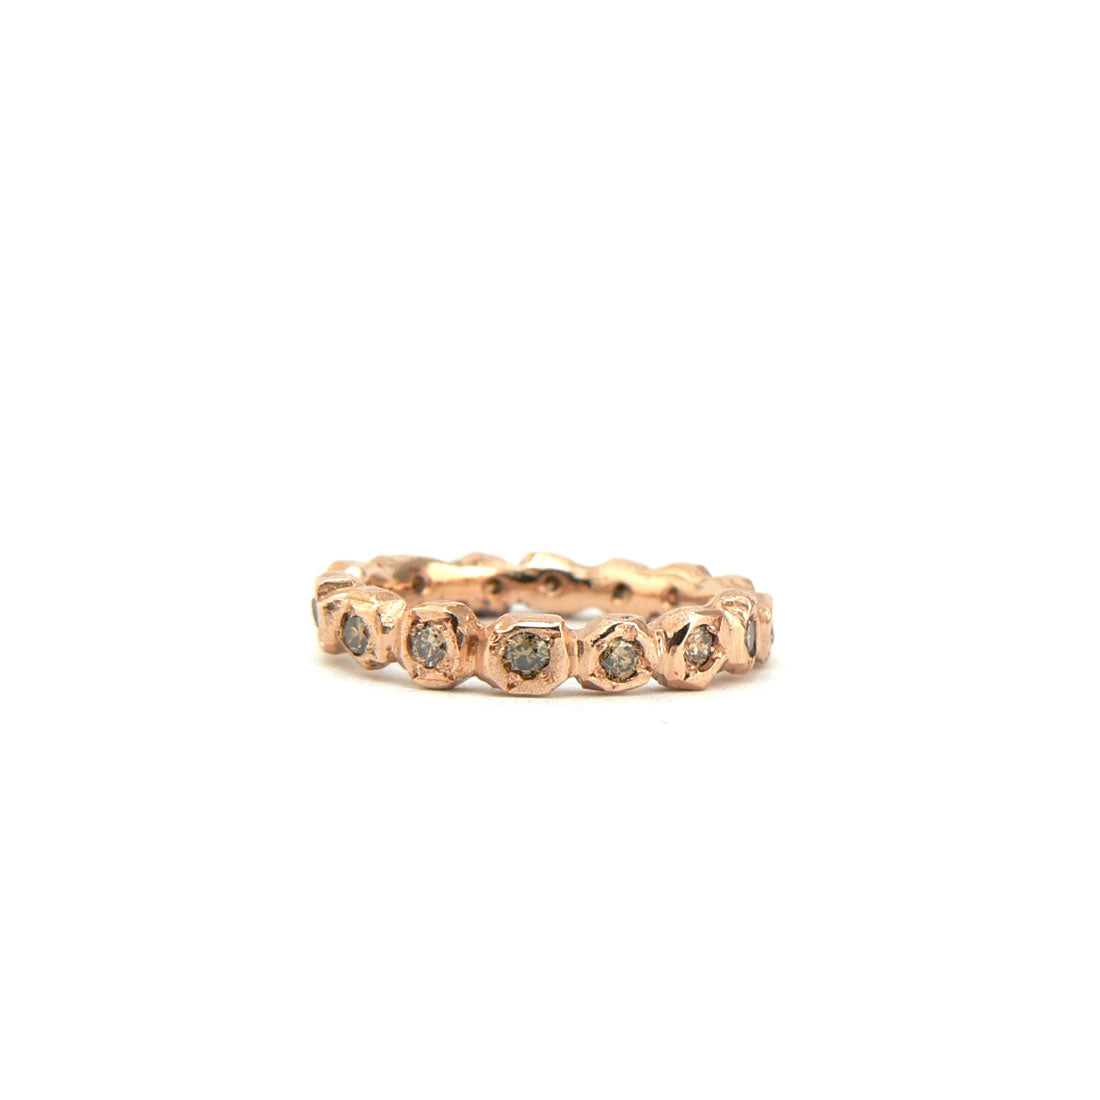 18ct rose gold and champagne diamond eternity engagement wedding ring, custom bespoke handmade.